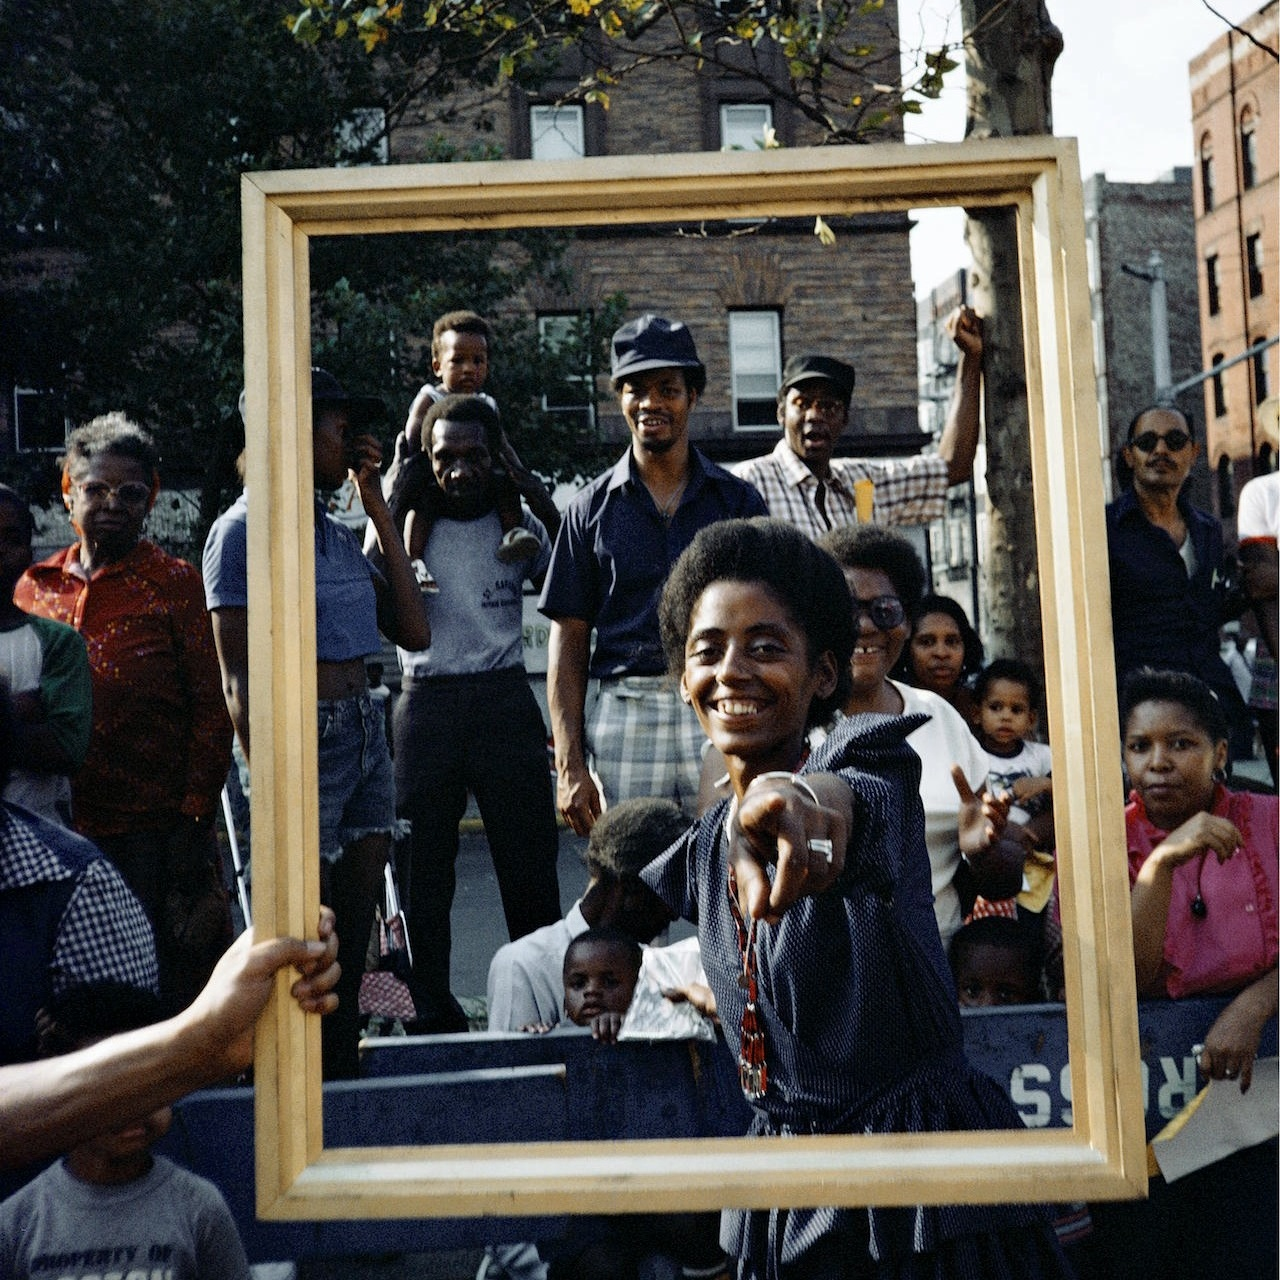 1983 - Celebrated artist Lorraine O'Grady challenges main stream to re-think perceptions of Blackness by transforming a float into a moving gold post. Standing on it were various African American male & female dancers holding gold frames. Her work was recently featured at the Harlem Studio Museum, more than three decades later